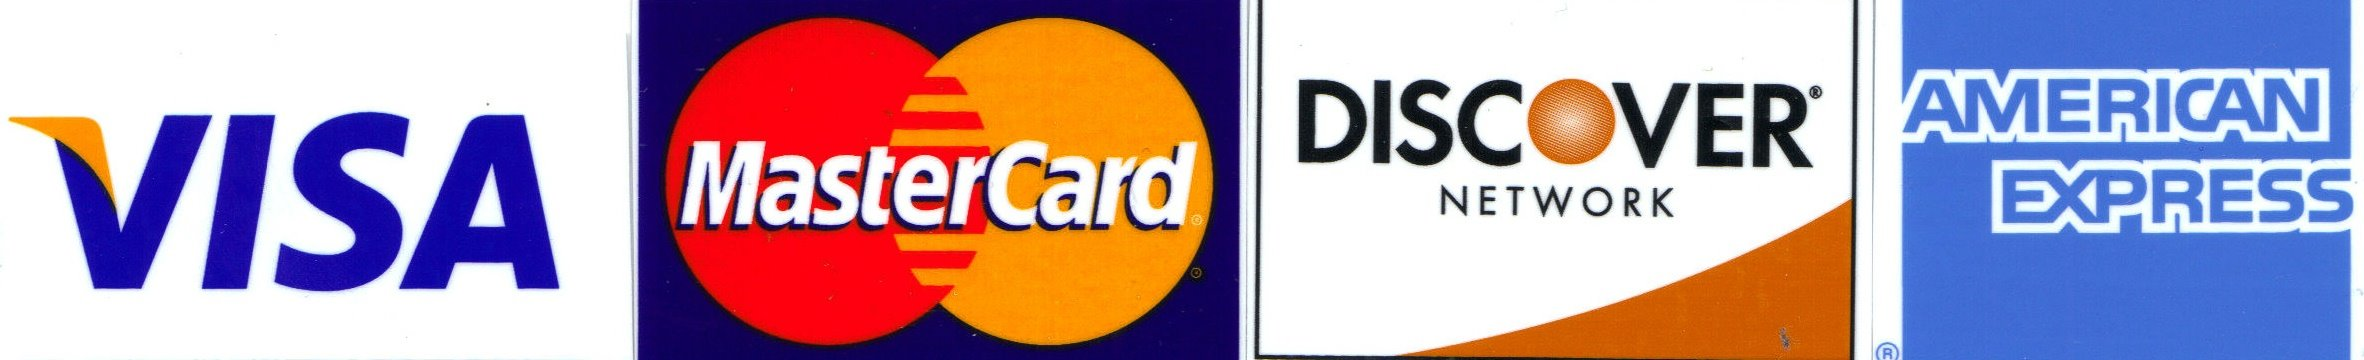 We accept Visa, MasterCard, Discover Network, and American Express